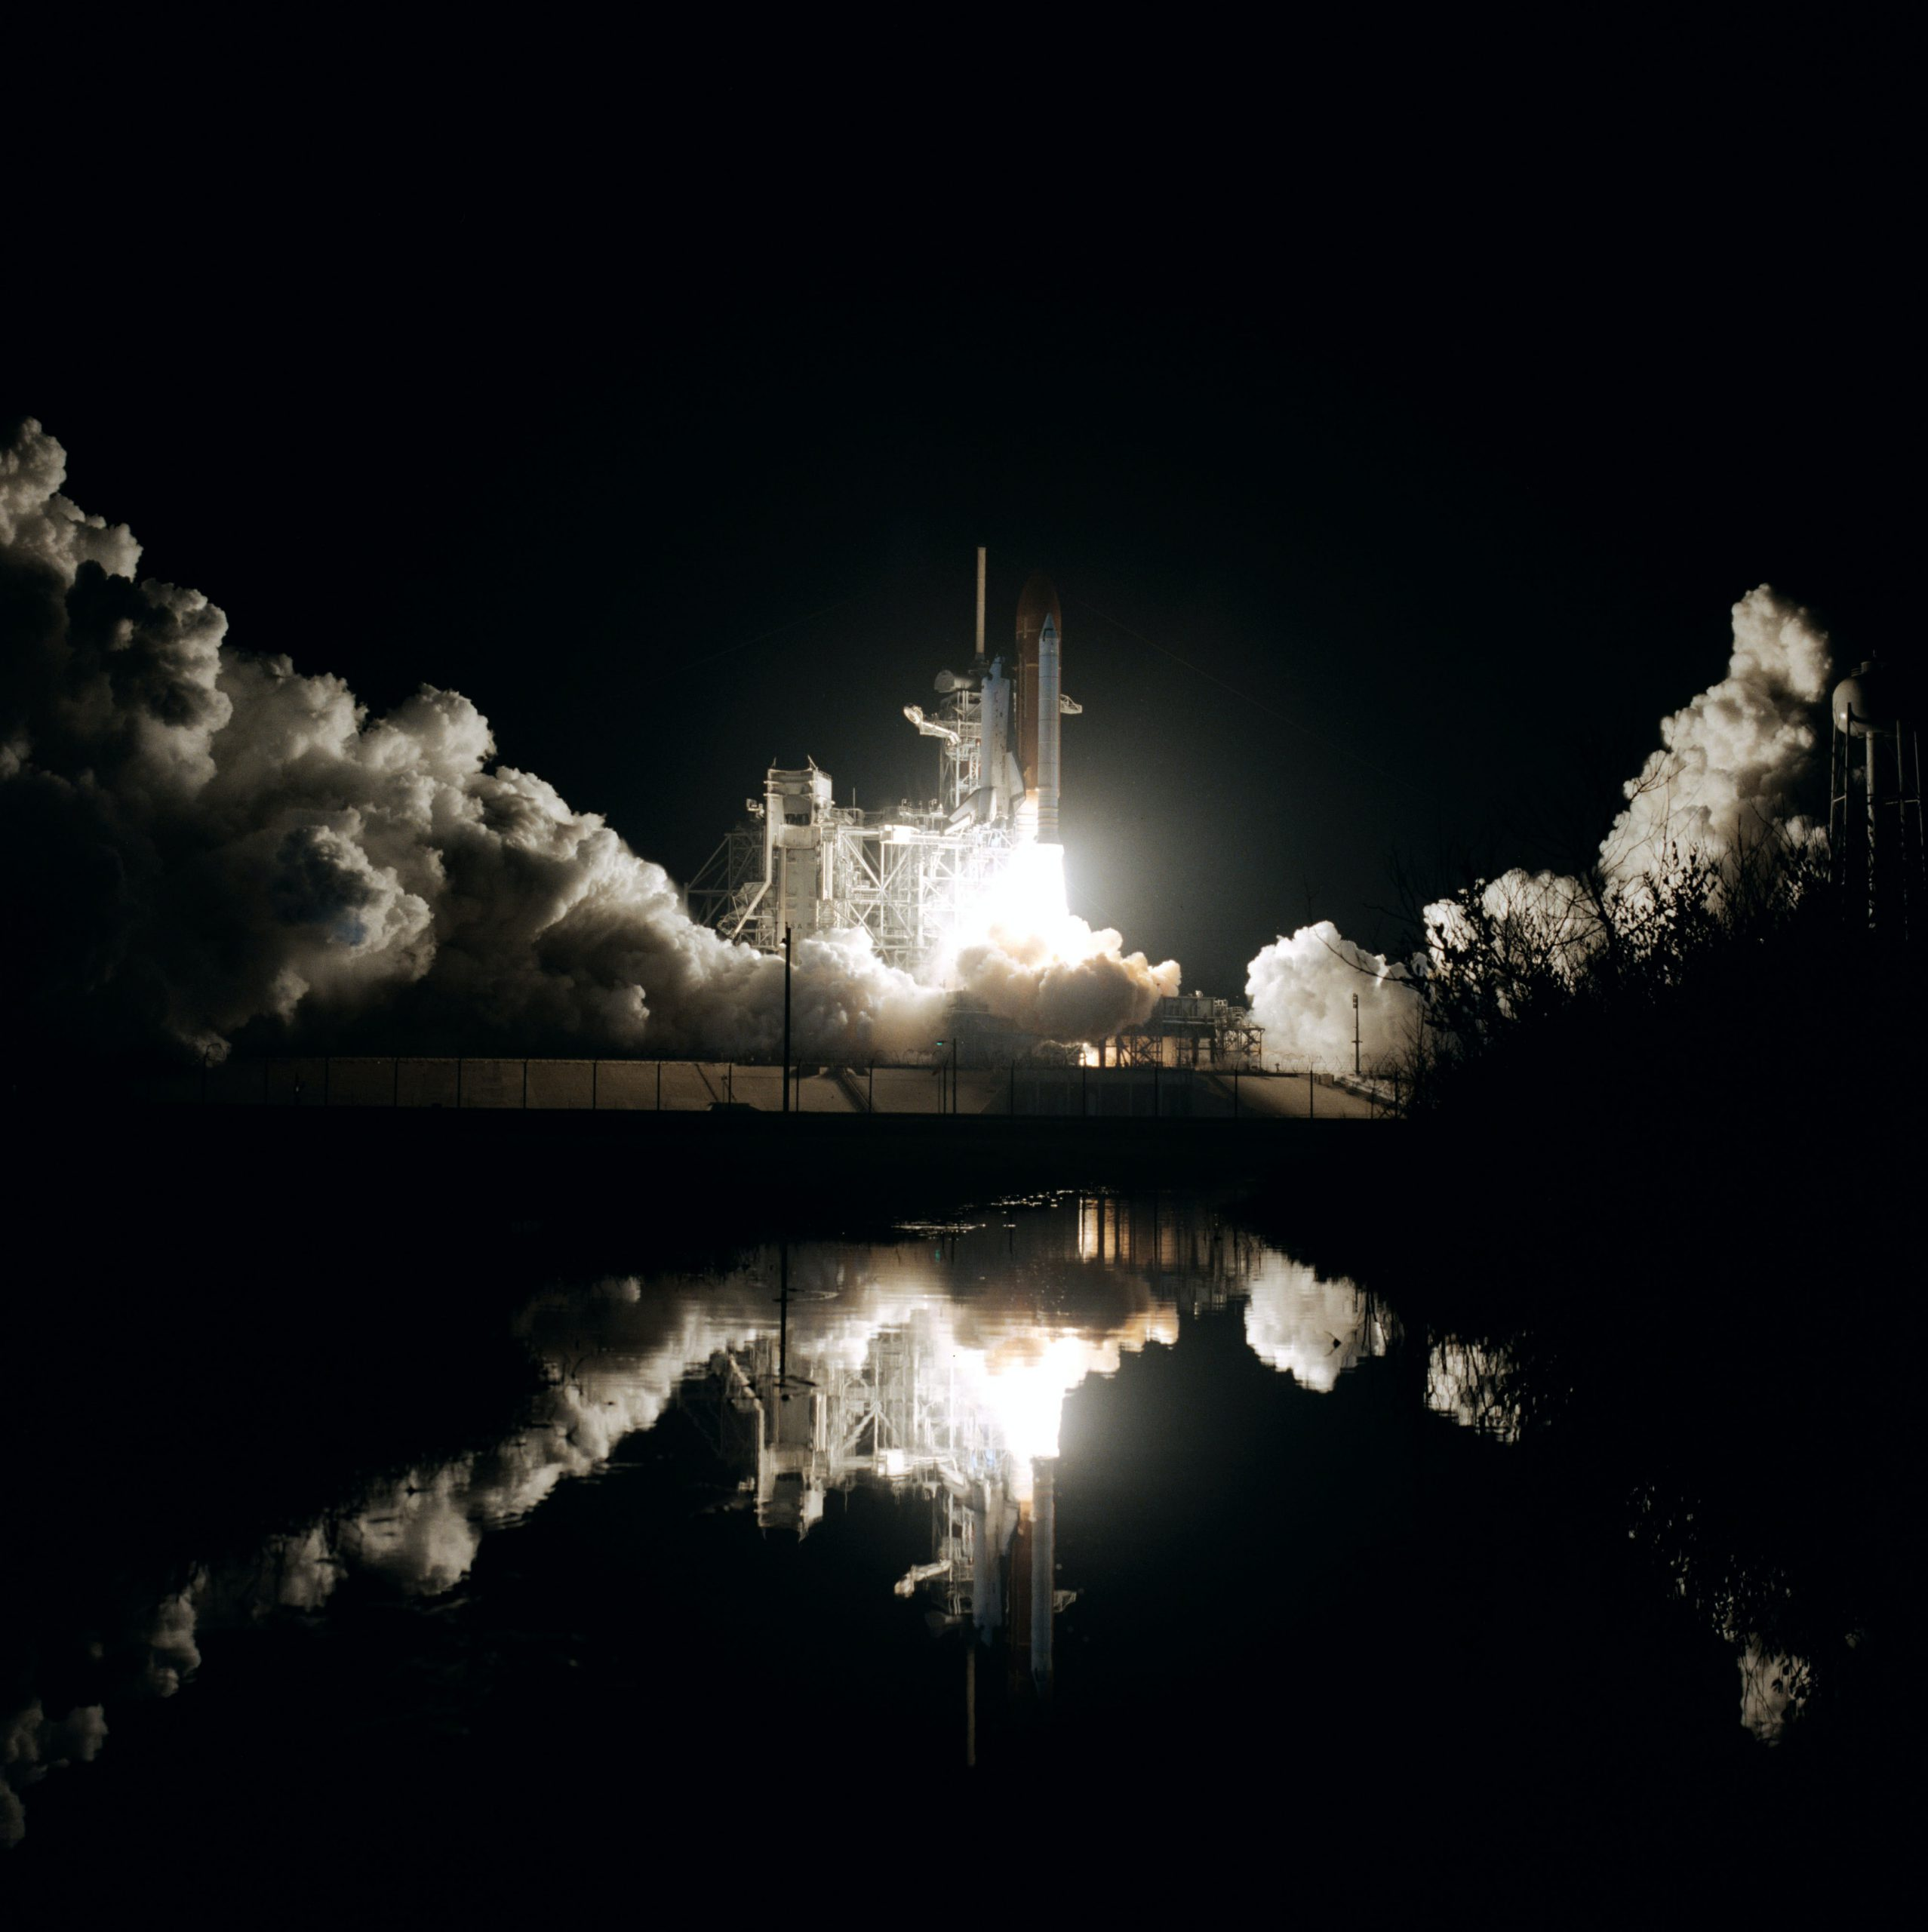 space shuttle launch and rocket explosion at night